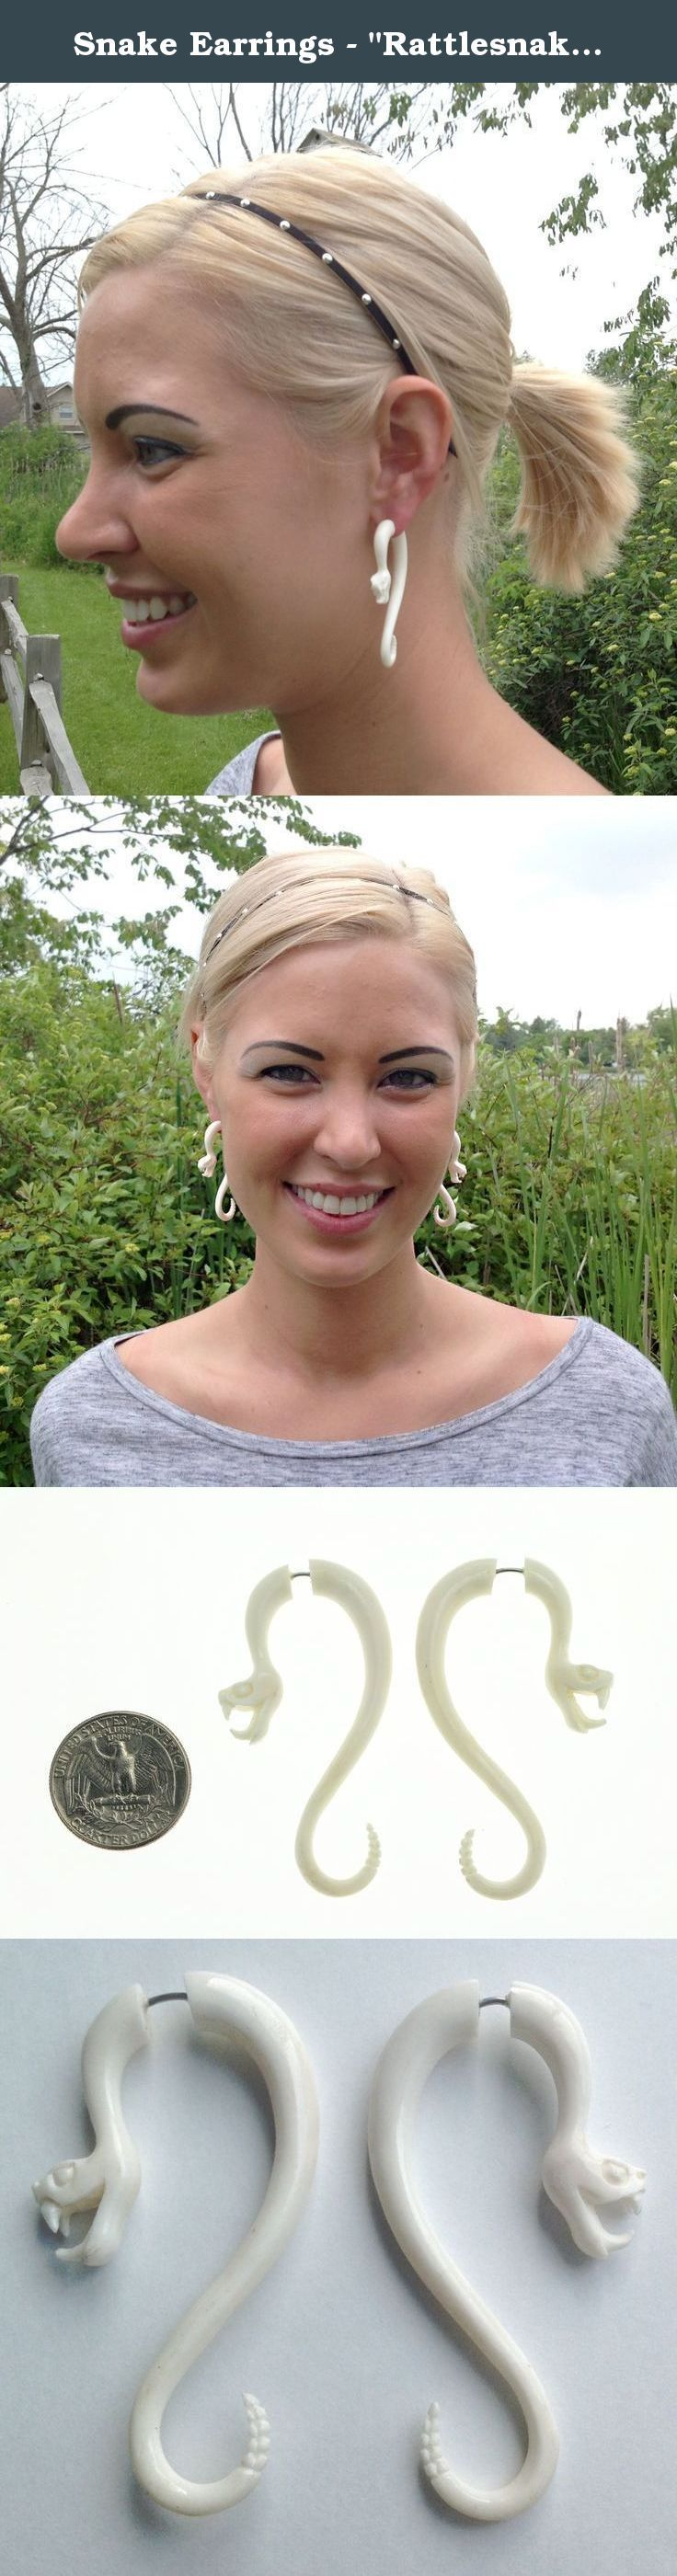 """Snake Earrings - """"Rattlesnake"""" - Bone - Organic - Detailed Snake Earrings Unisex By Primal Distro. We sell fabulous natural, eco-friendly jewelry. Our designs are hand made with loving care. There are many styles to choose from! Thanks for taking the time to check us out!."""